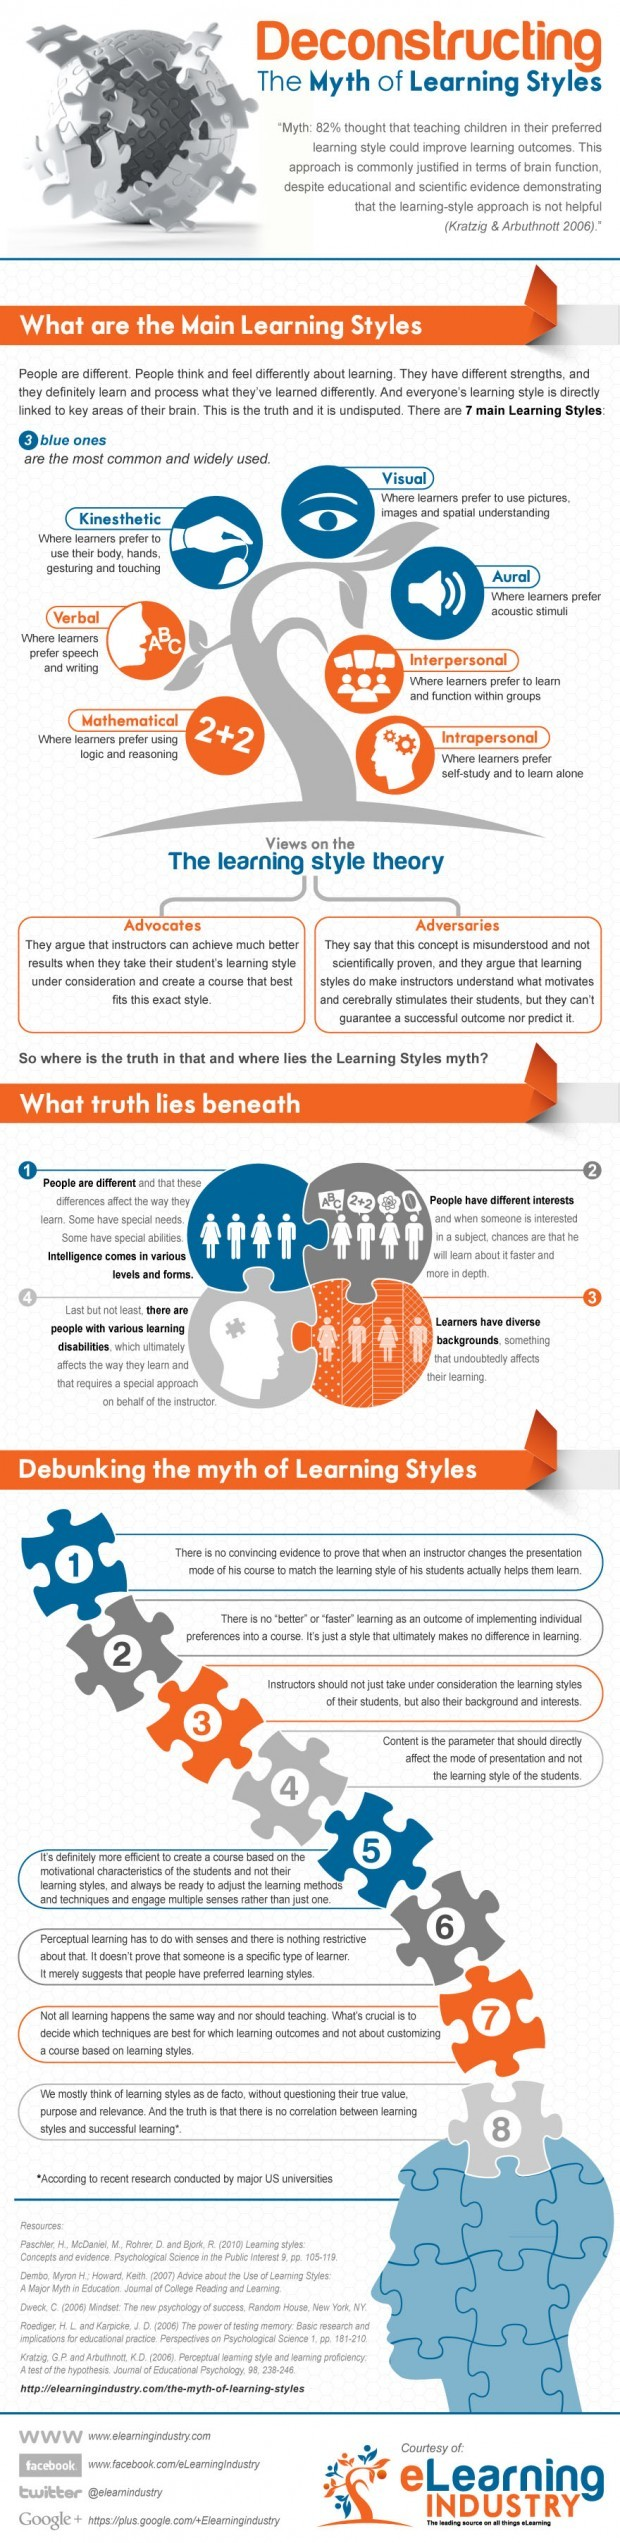 The Myth Of Learning Styles Debunked >> Learning Styles Are A Myth Infographic Learndash